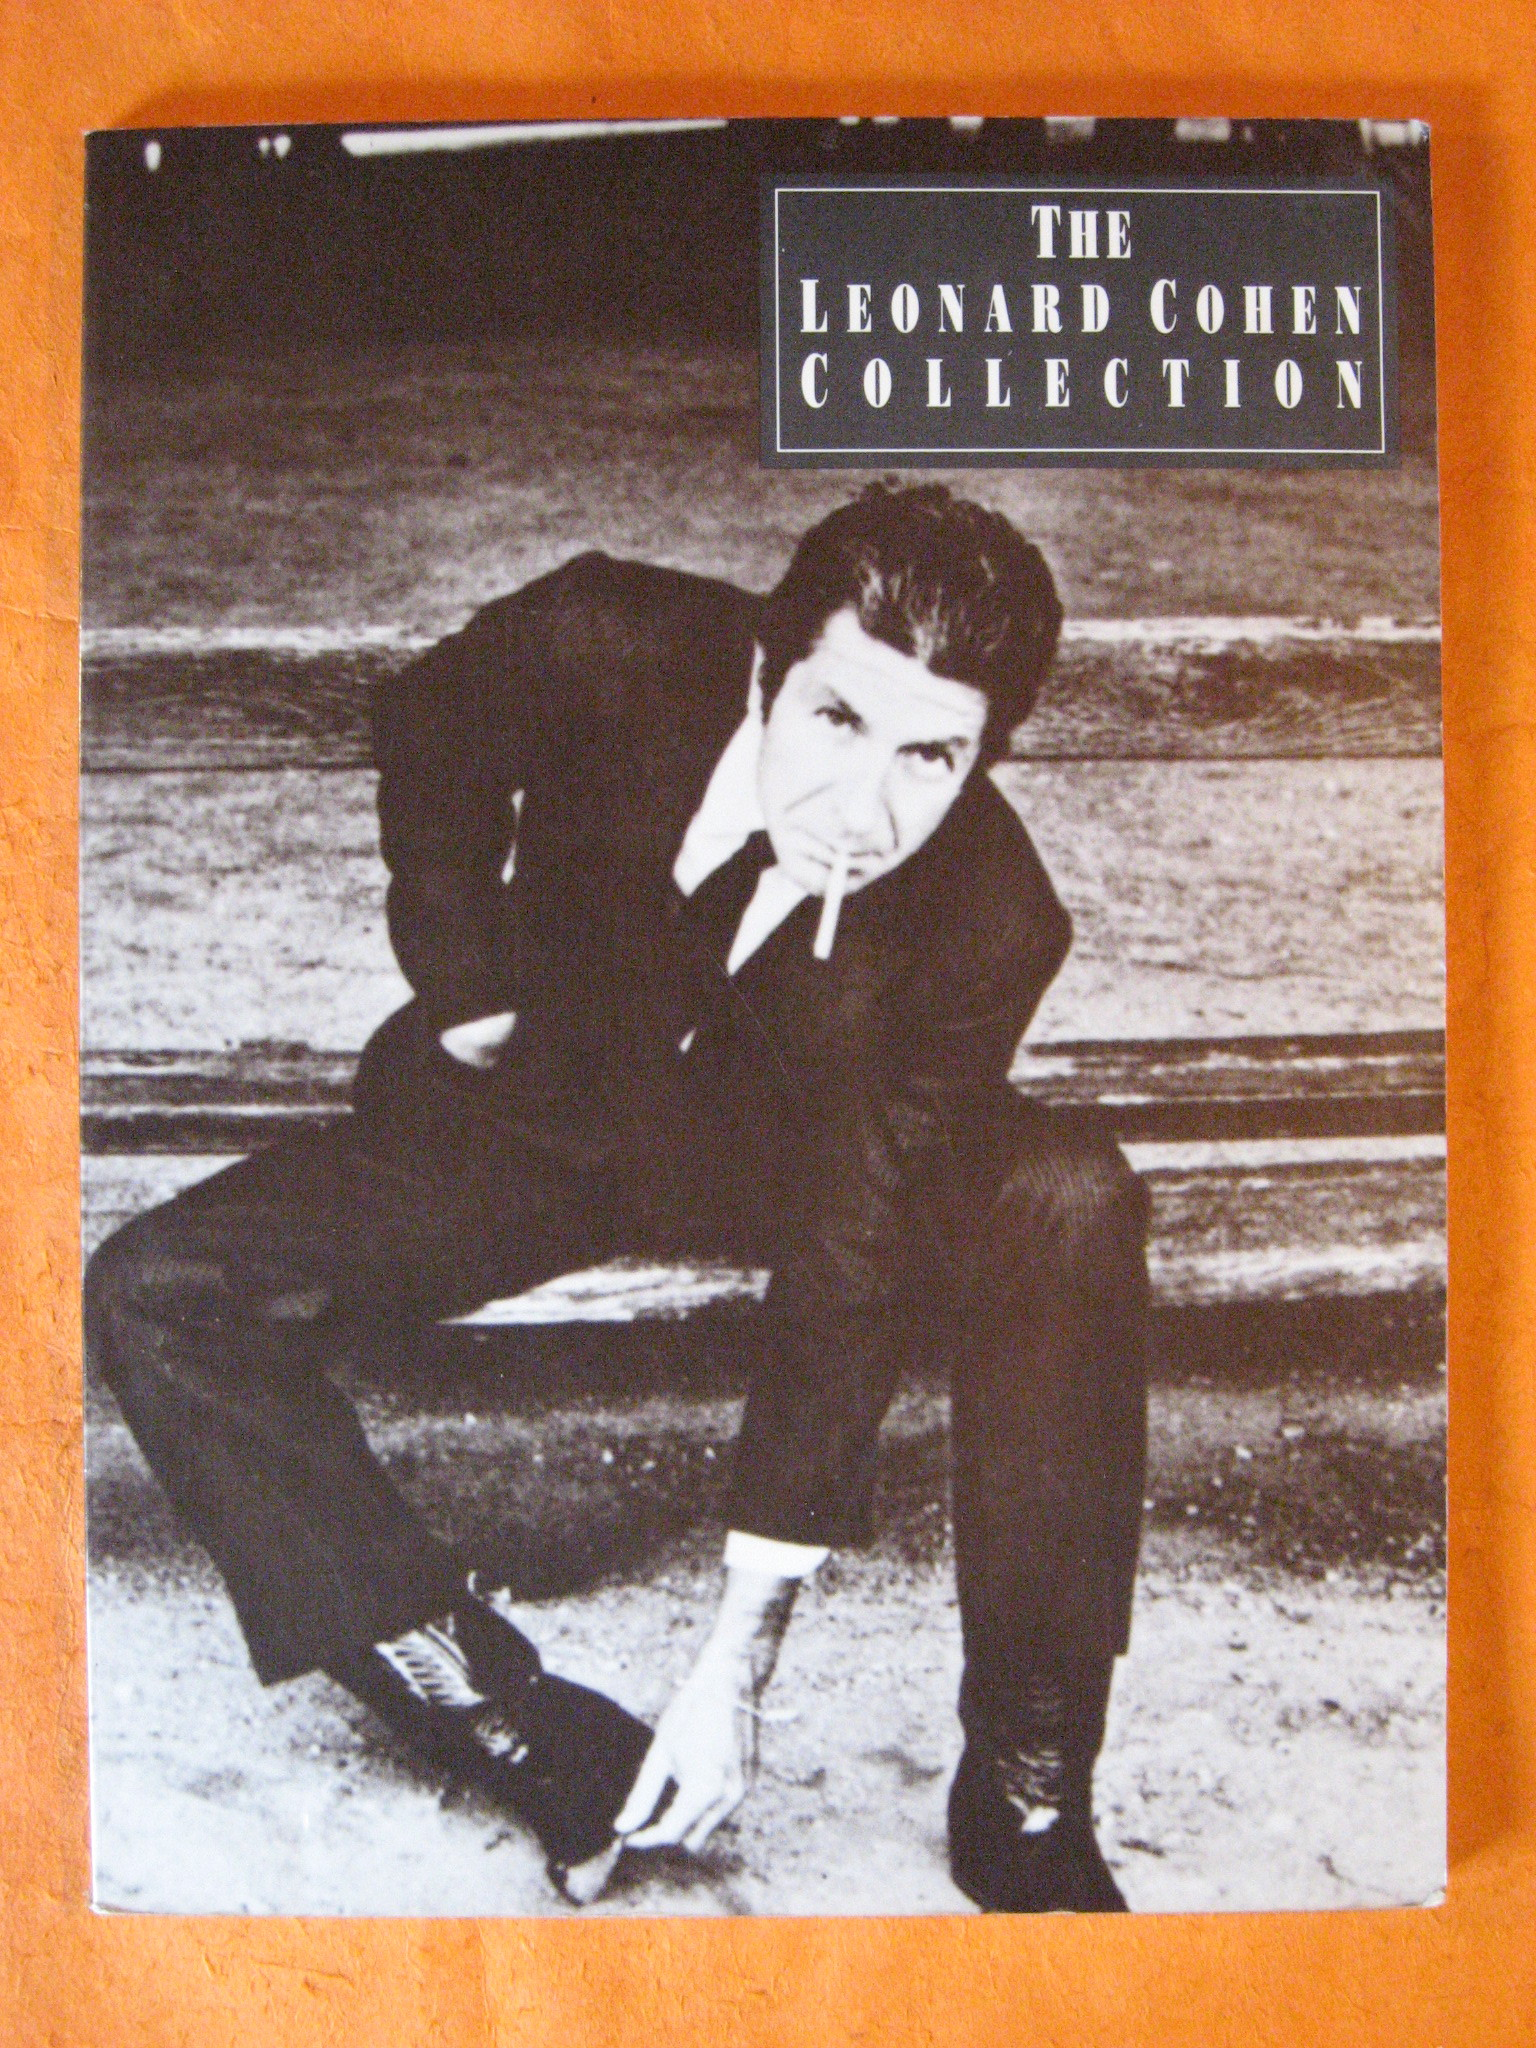 Leonard Cohen Collection, The